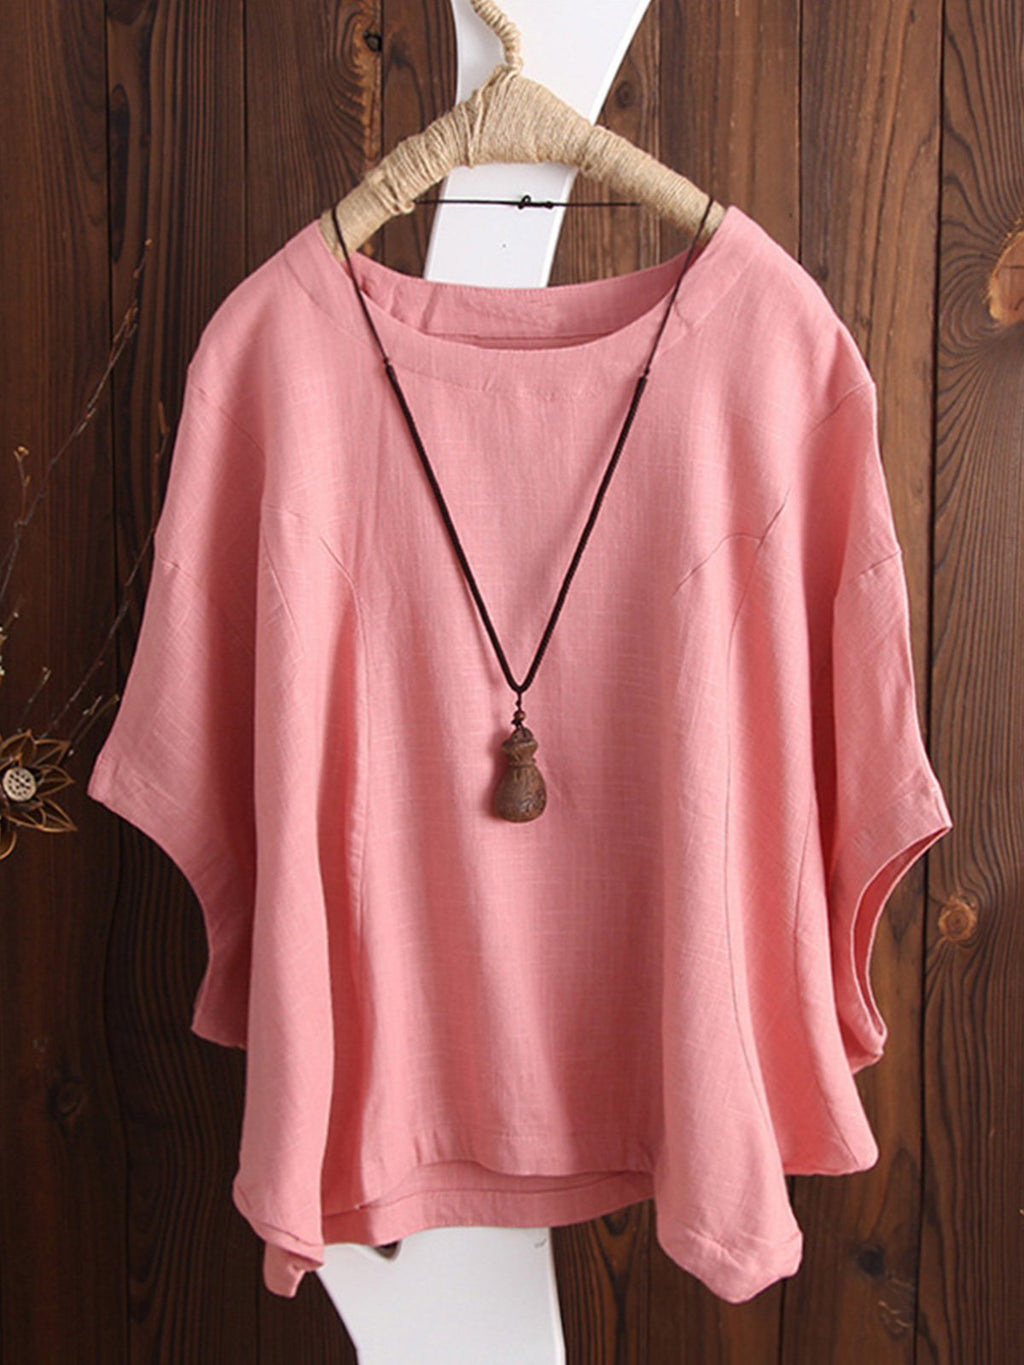 Women Casual Cotton Plus Size Drop Shoulder T-shirt